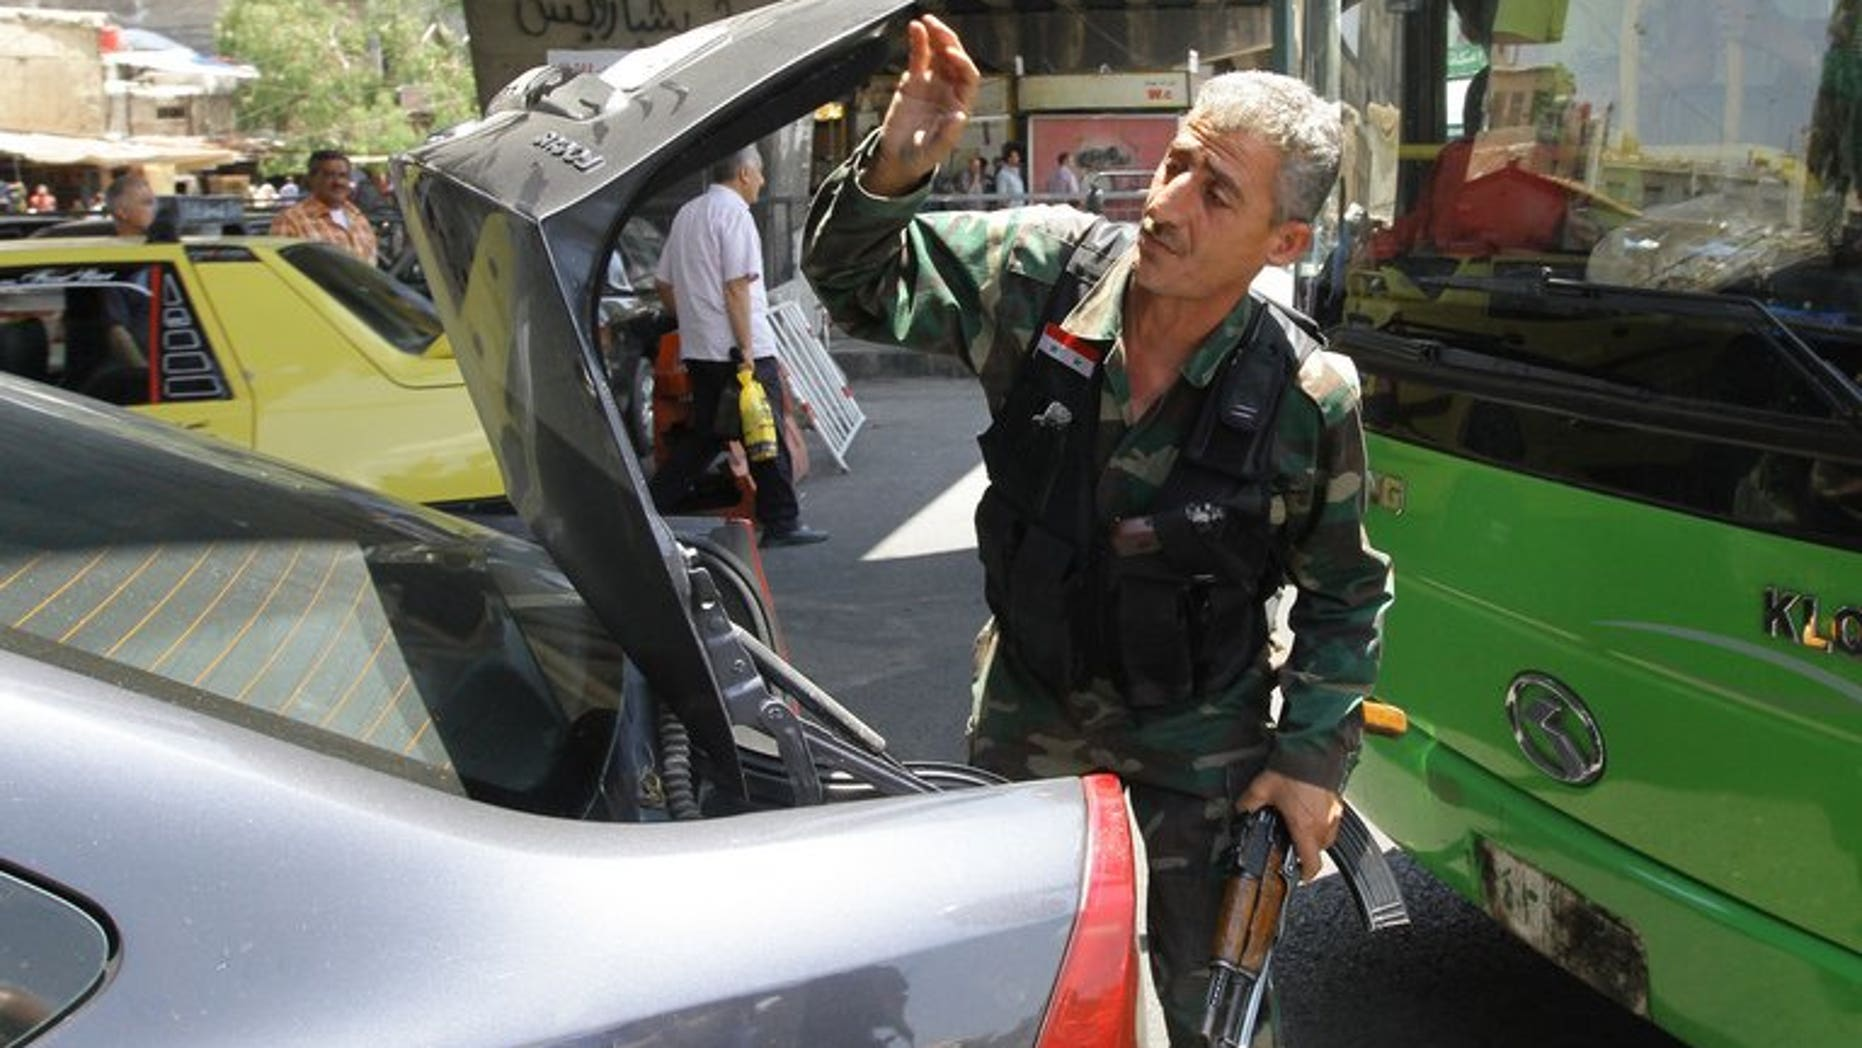 A Syrian soldier checks the trunk of a car at a checkpoint in Damascus on June 17, 2013. A suicide attack Sunday hit the northern Damascus district of Rukn al-Din, said Syrian state television, which also cited an unknown number of casualties